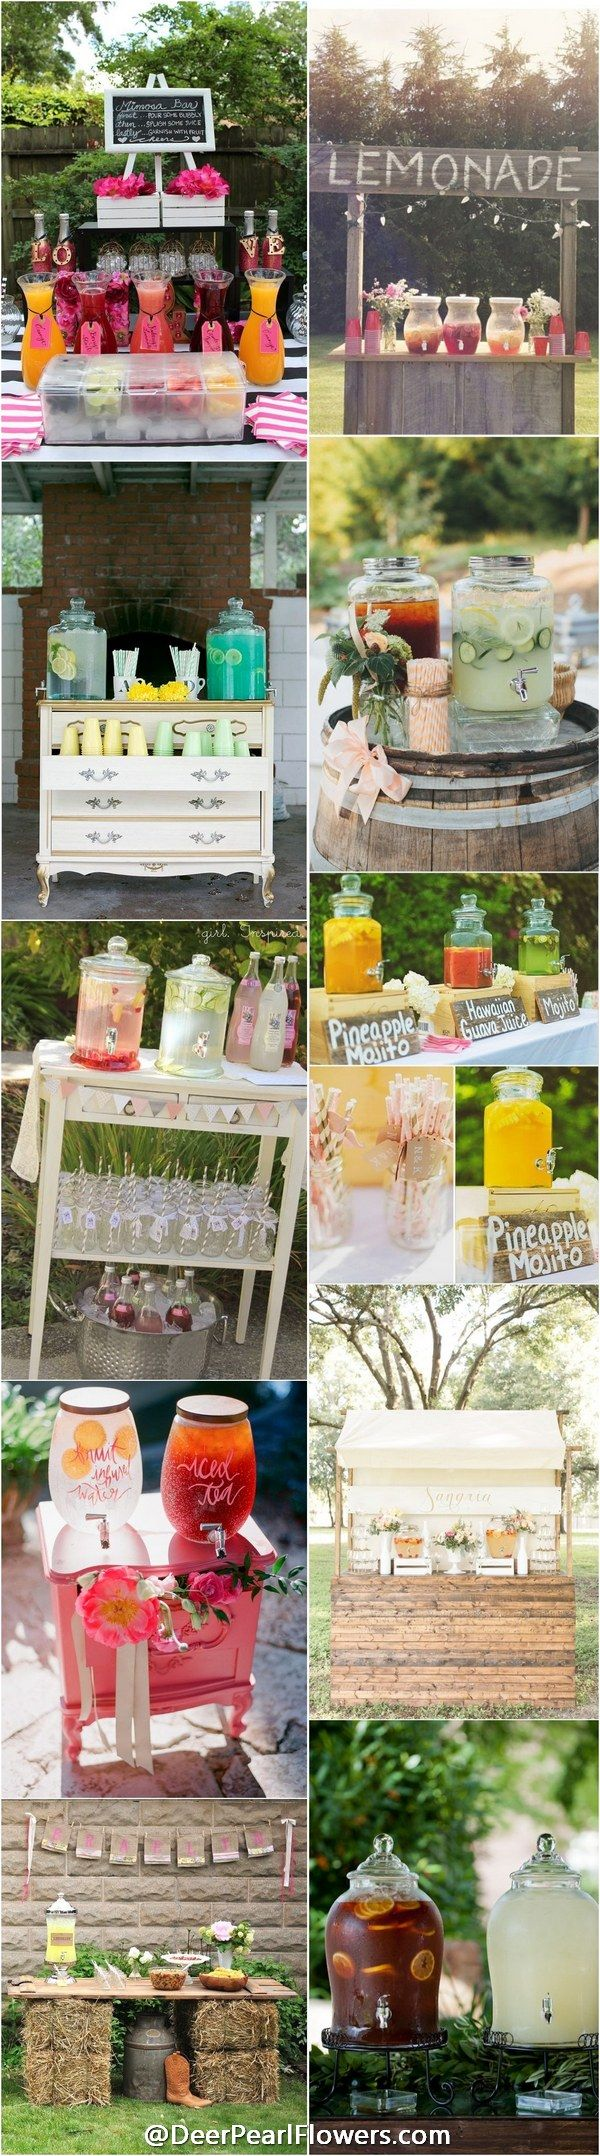 rustic country wedding ideas - rustic country wedding drink bar / http://www.deerpearlflowers.com/wedding-drink-bar-station-ideas/